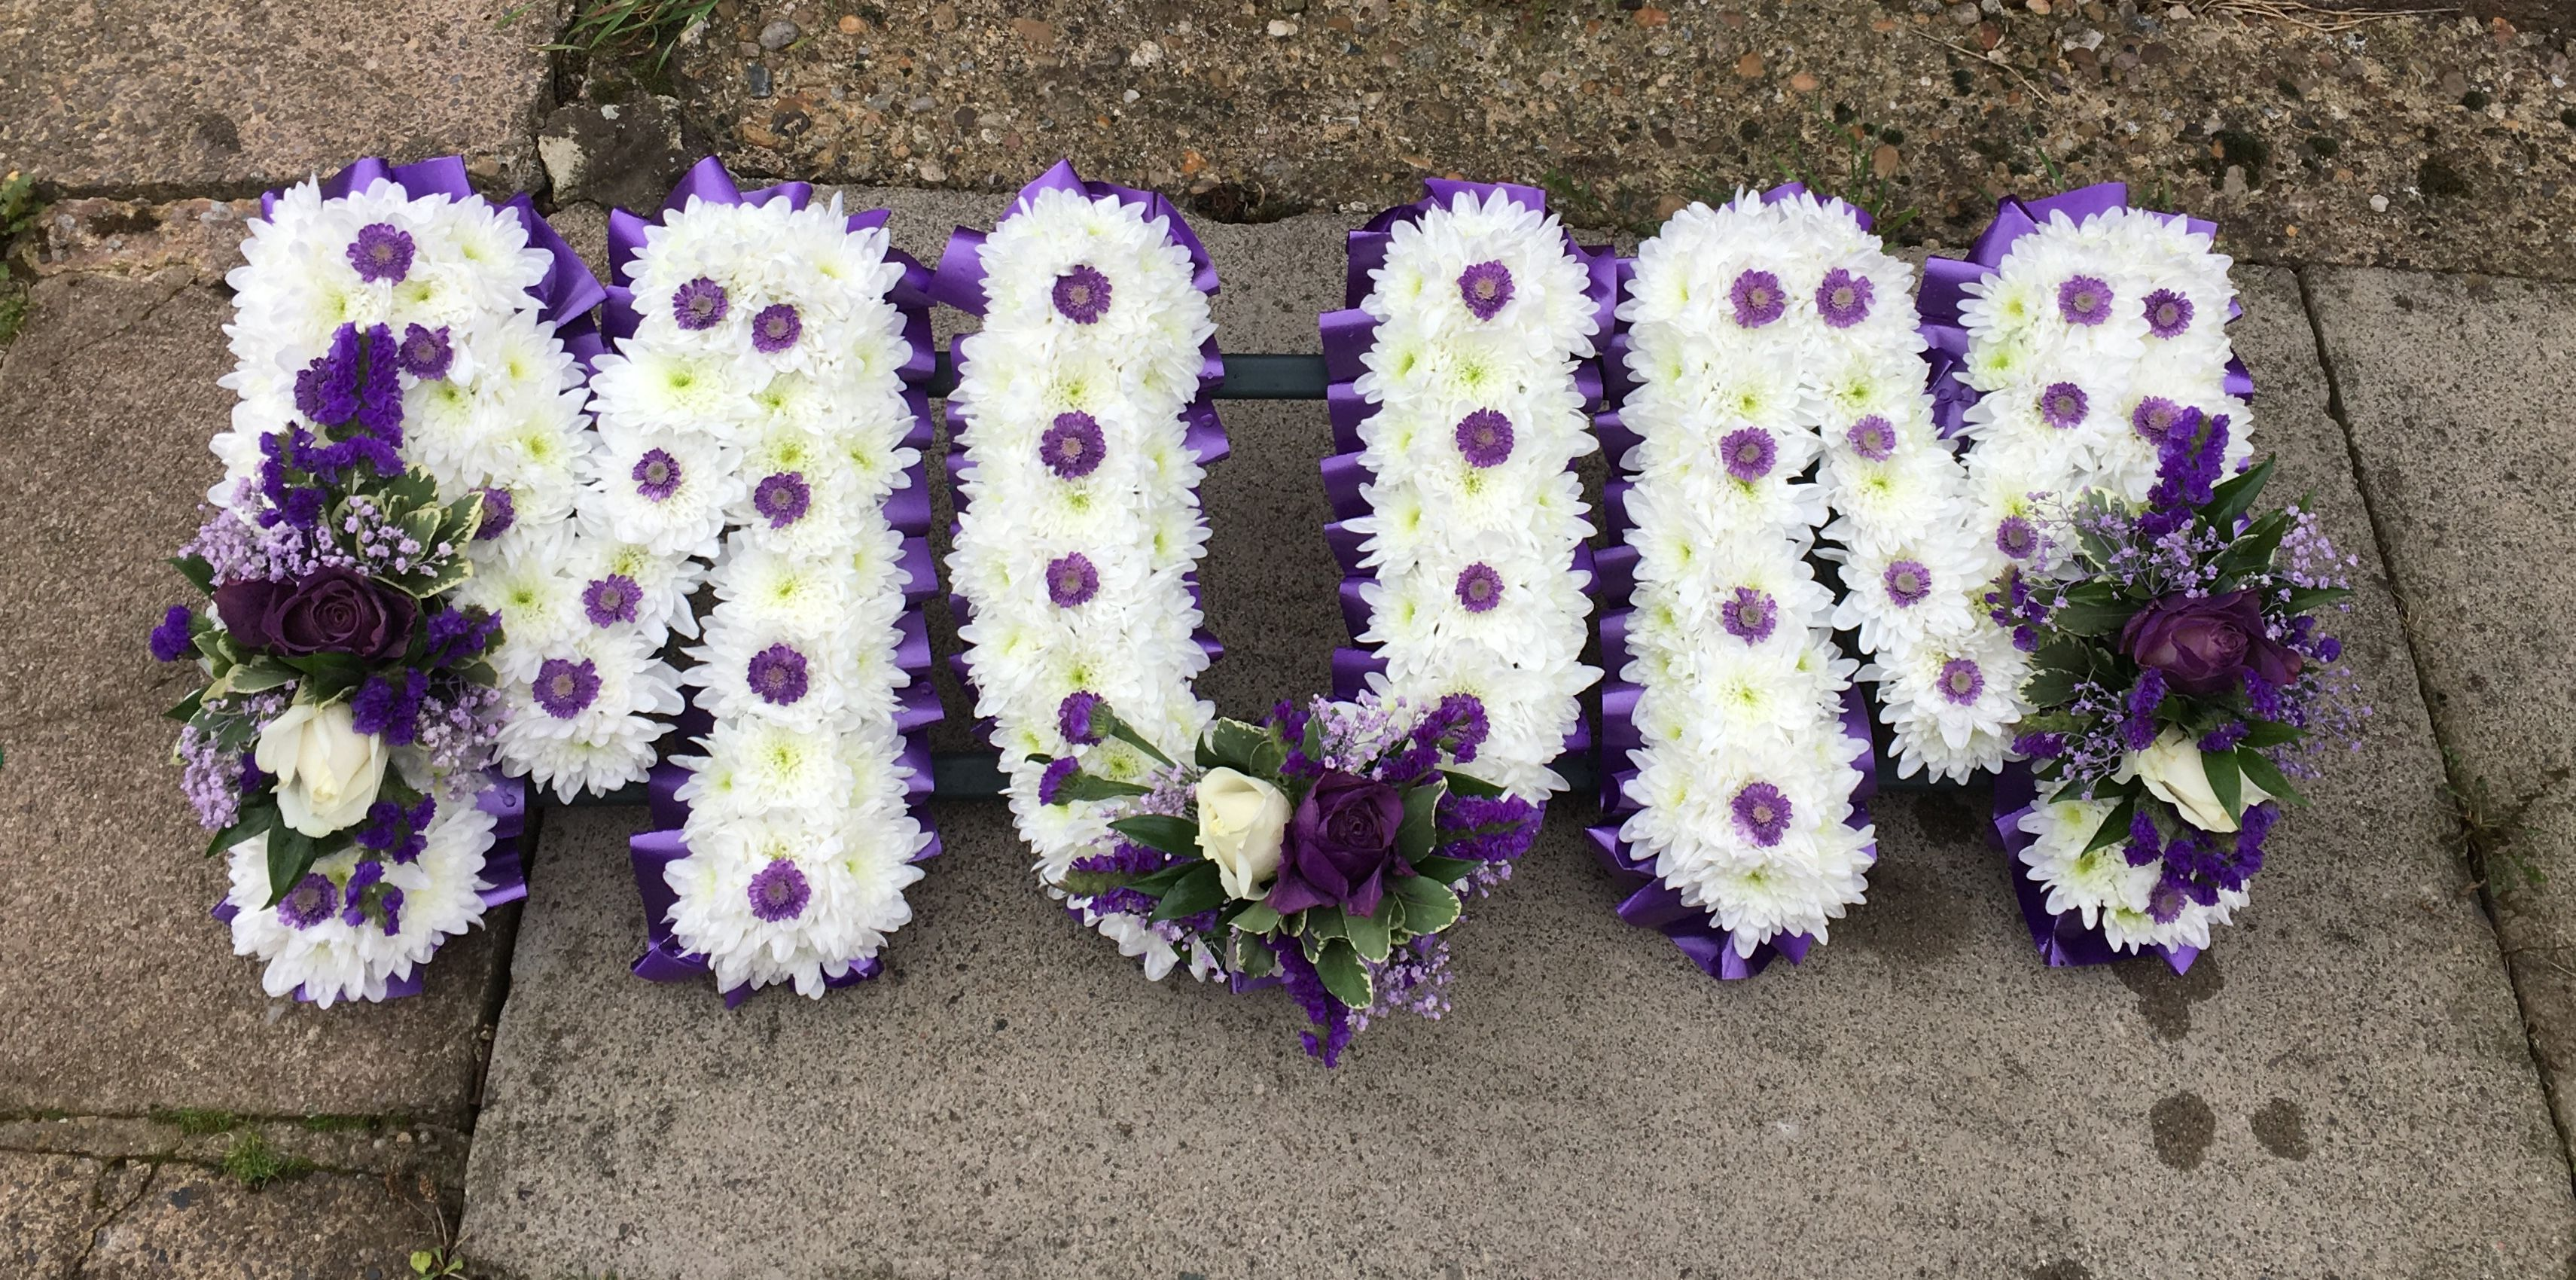 Pin by kamlesh vadera on funeral flowers pinterest funeral leicester le4 florist specialising in fresh wedding flowers for indian and asian weddings across the midlands birmingham london izmirmasajfo